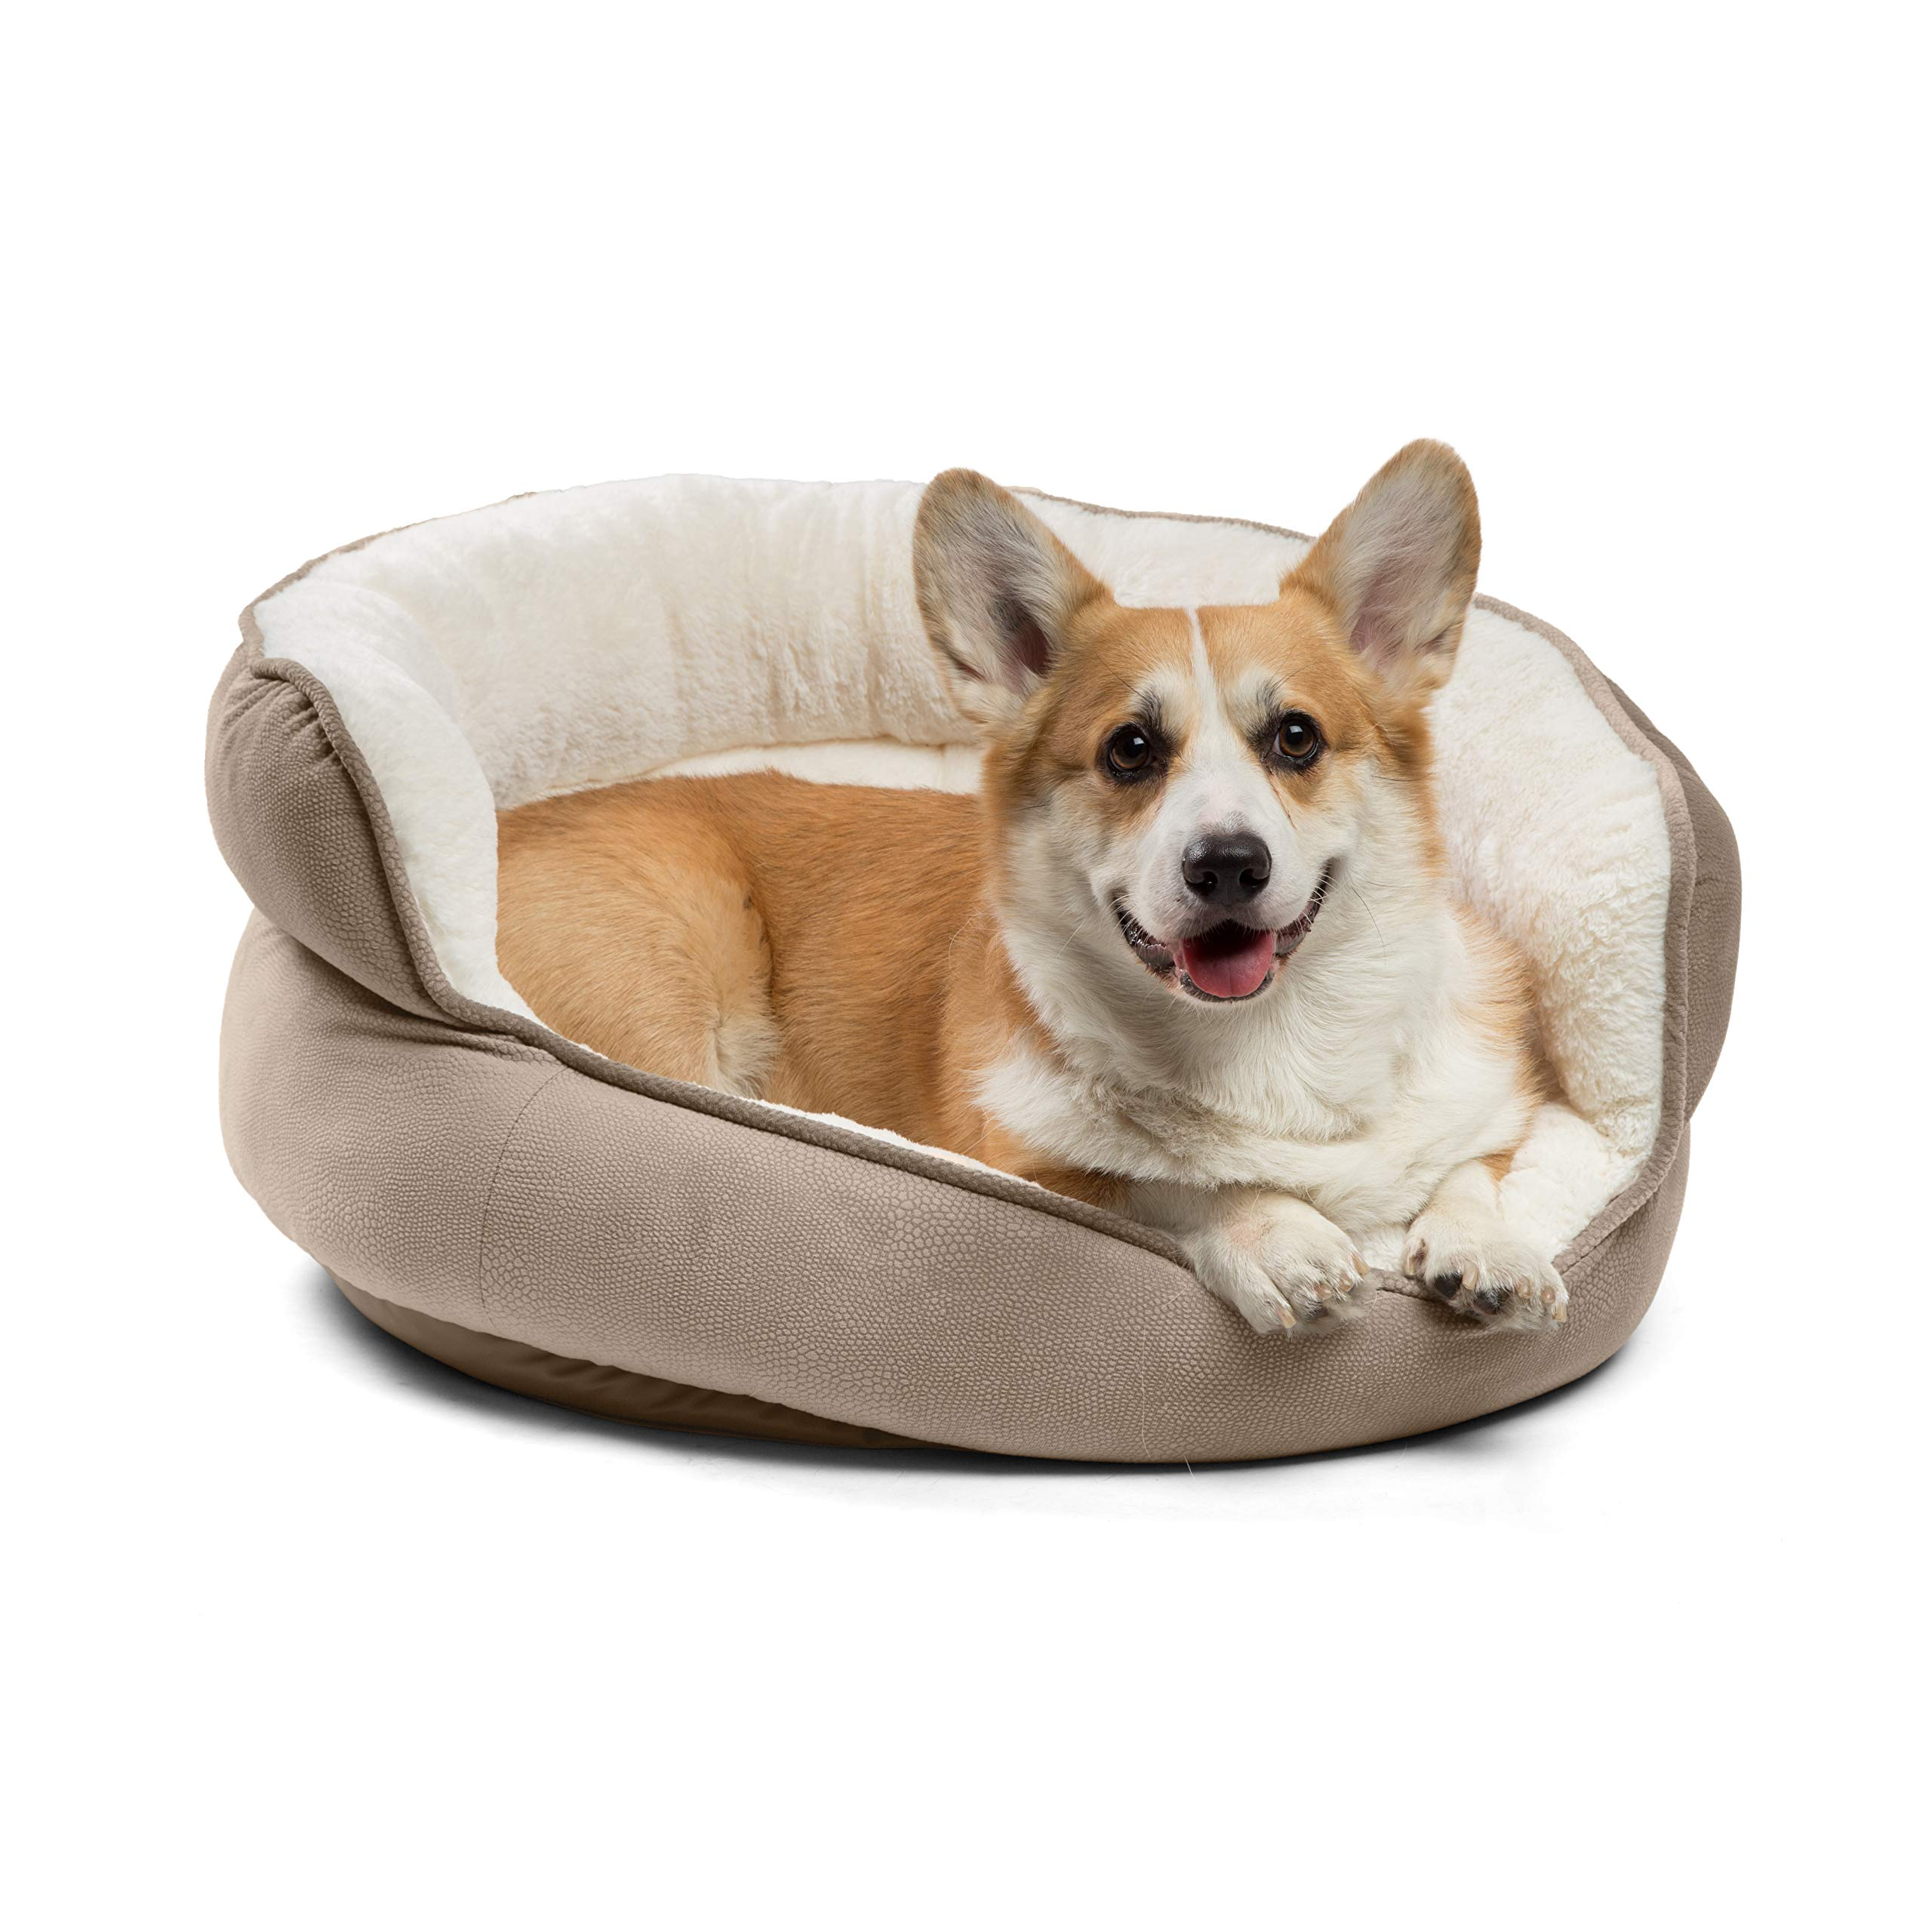 Best Friends by Sheri Jumbo Pet Throne - Luxury Dog and Cat Bed, High Walls for Security and Deep Rest, Machine Washable (Wheat) by Best Friends by Sheri